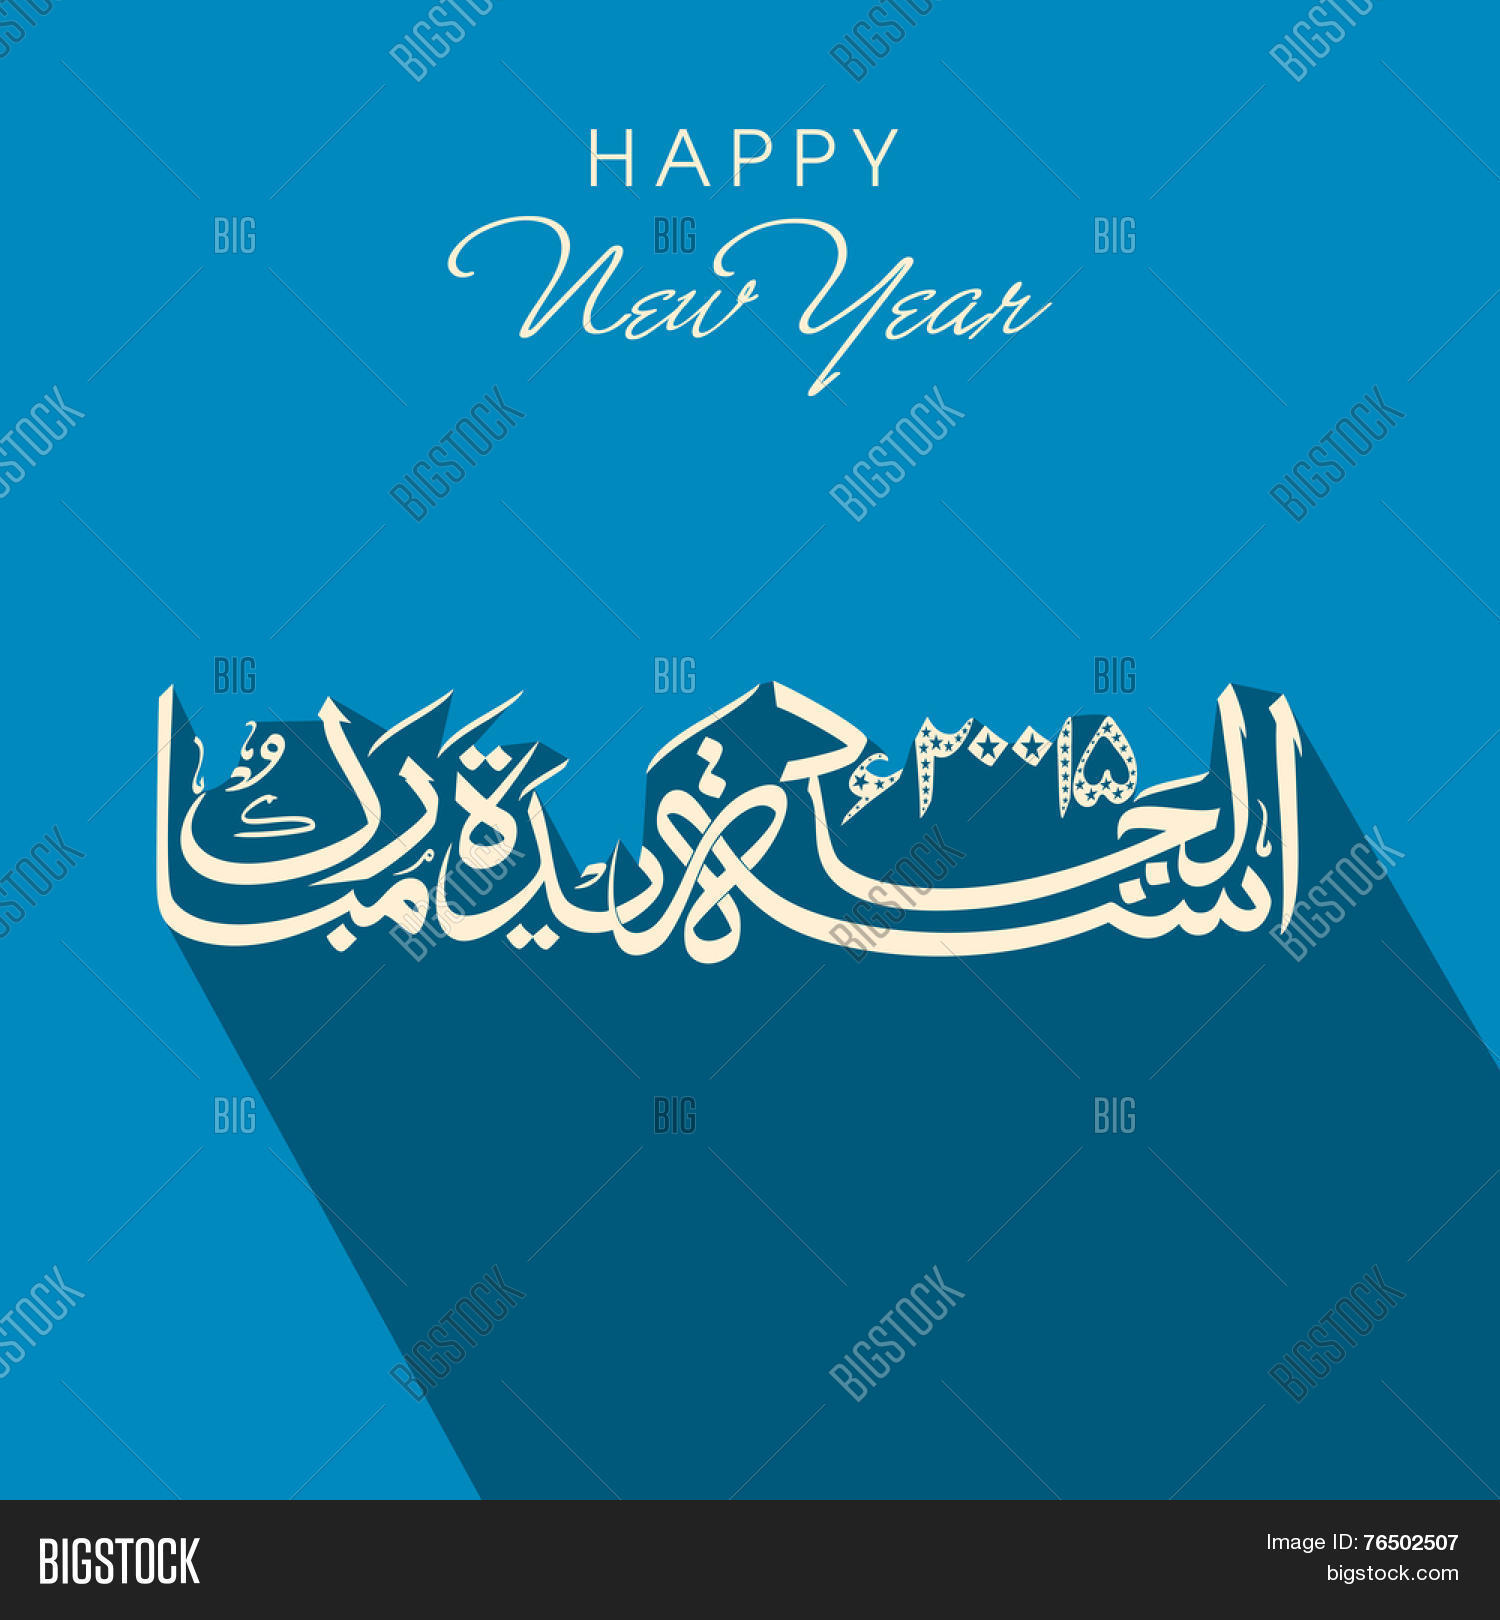 Arabic islamic vector photo free trial bigstock arabic islamic calligraphy of text naya saal mubarak ho happy new year 2015 on m4hsunfo